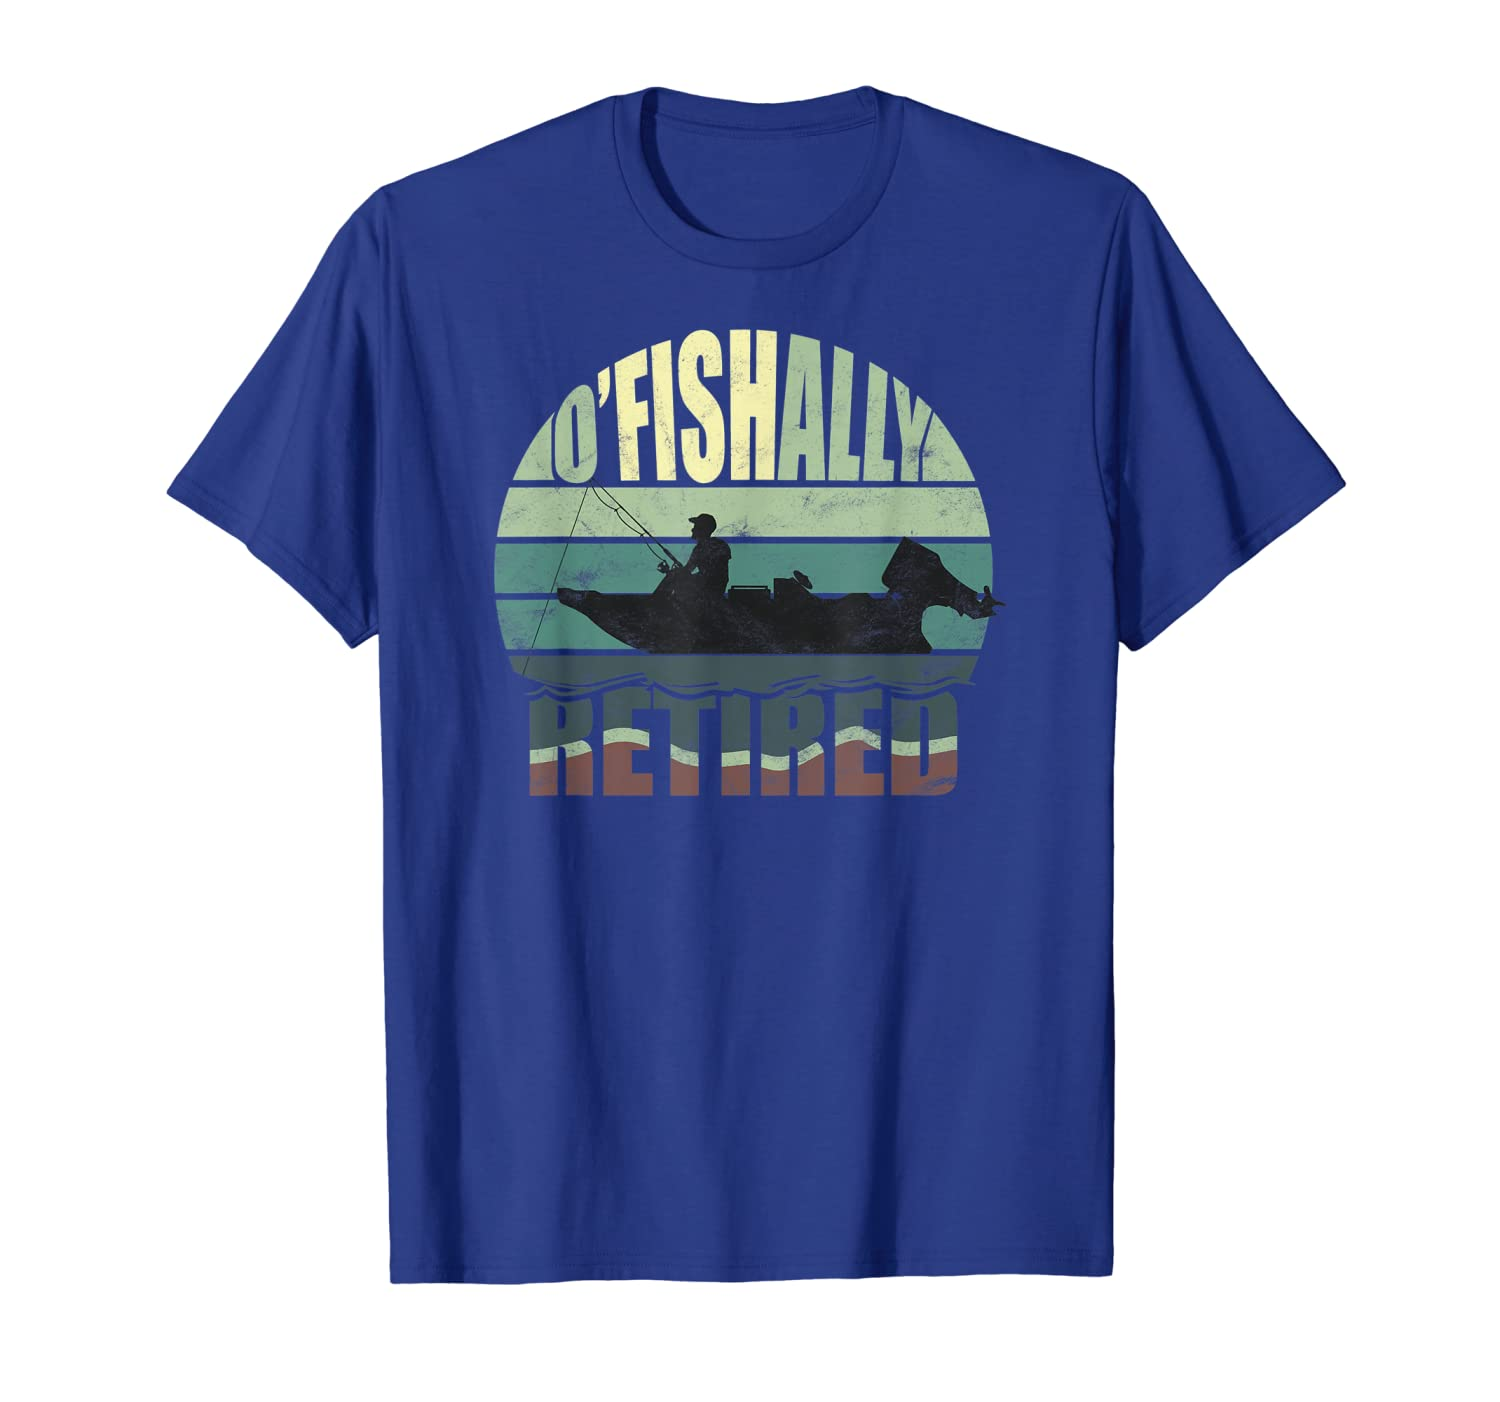 OFiCIALLY RETIRED Funny Fishing Gift for Retirement T-Shirt Unisex Tshirt